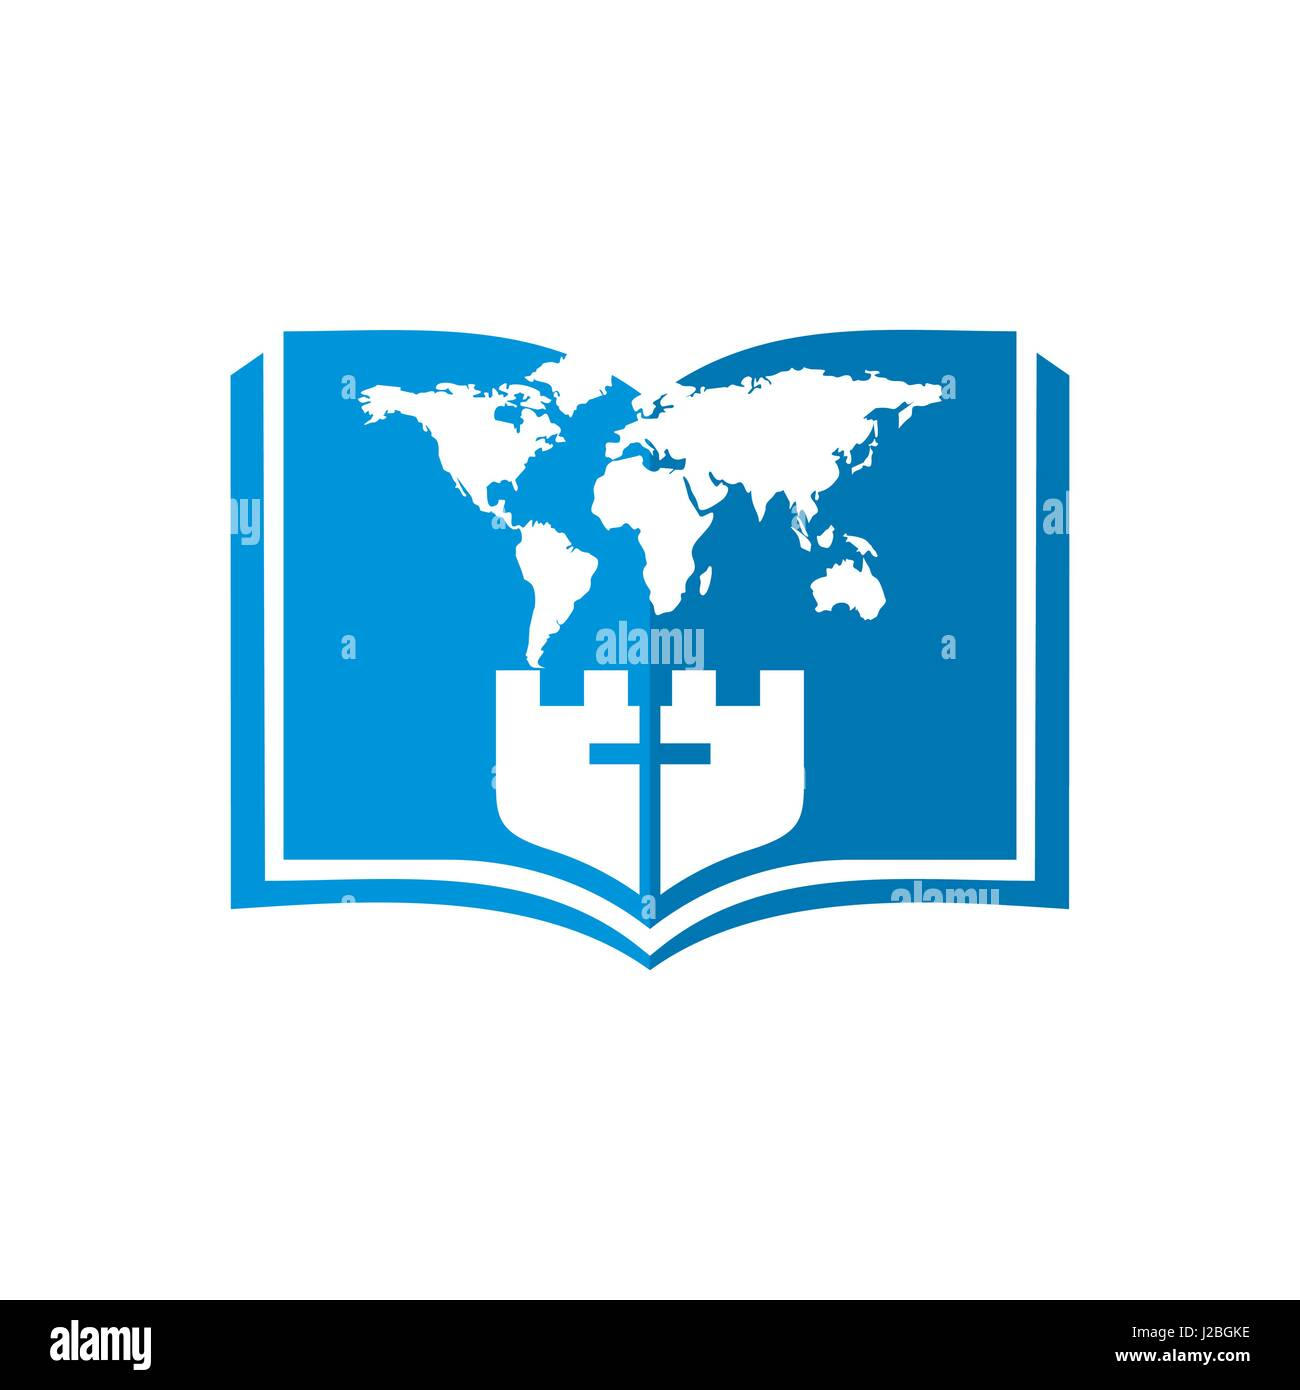 Church logo christian symbols bible world map fortress and cross church logo christian symbols bible world map fortress and cross gumiabroncs Image collections